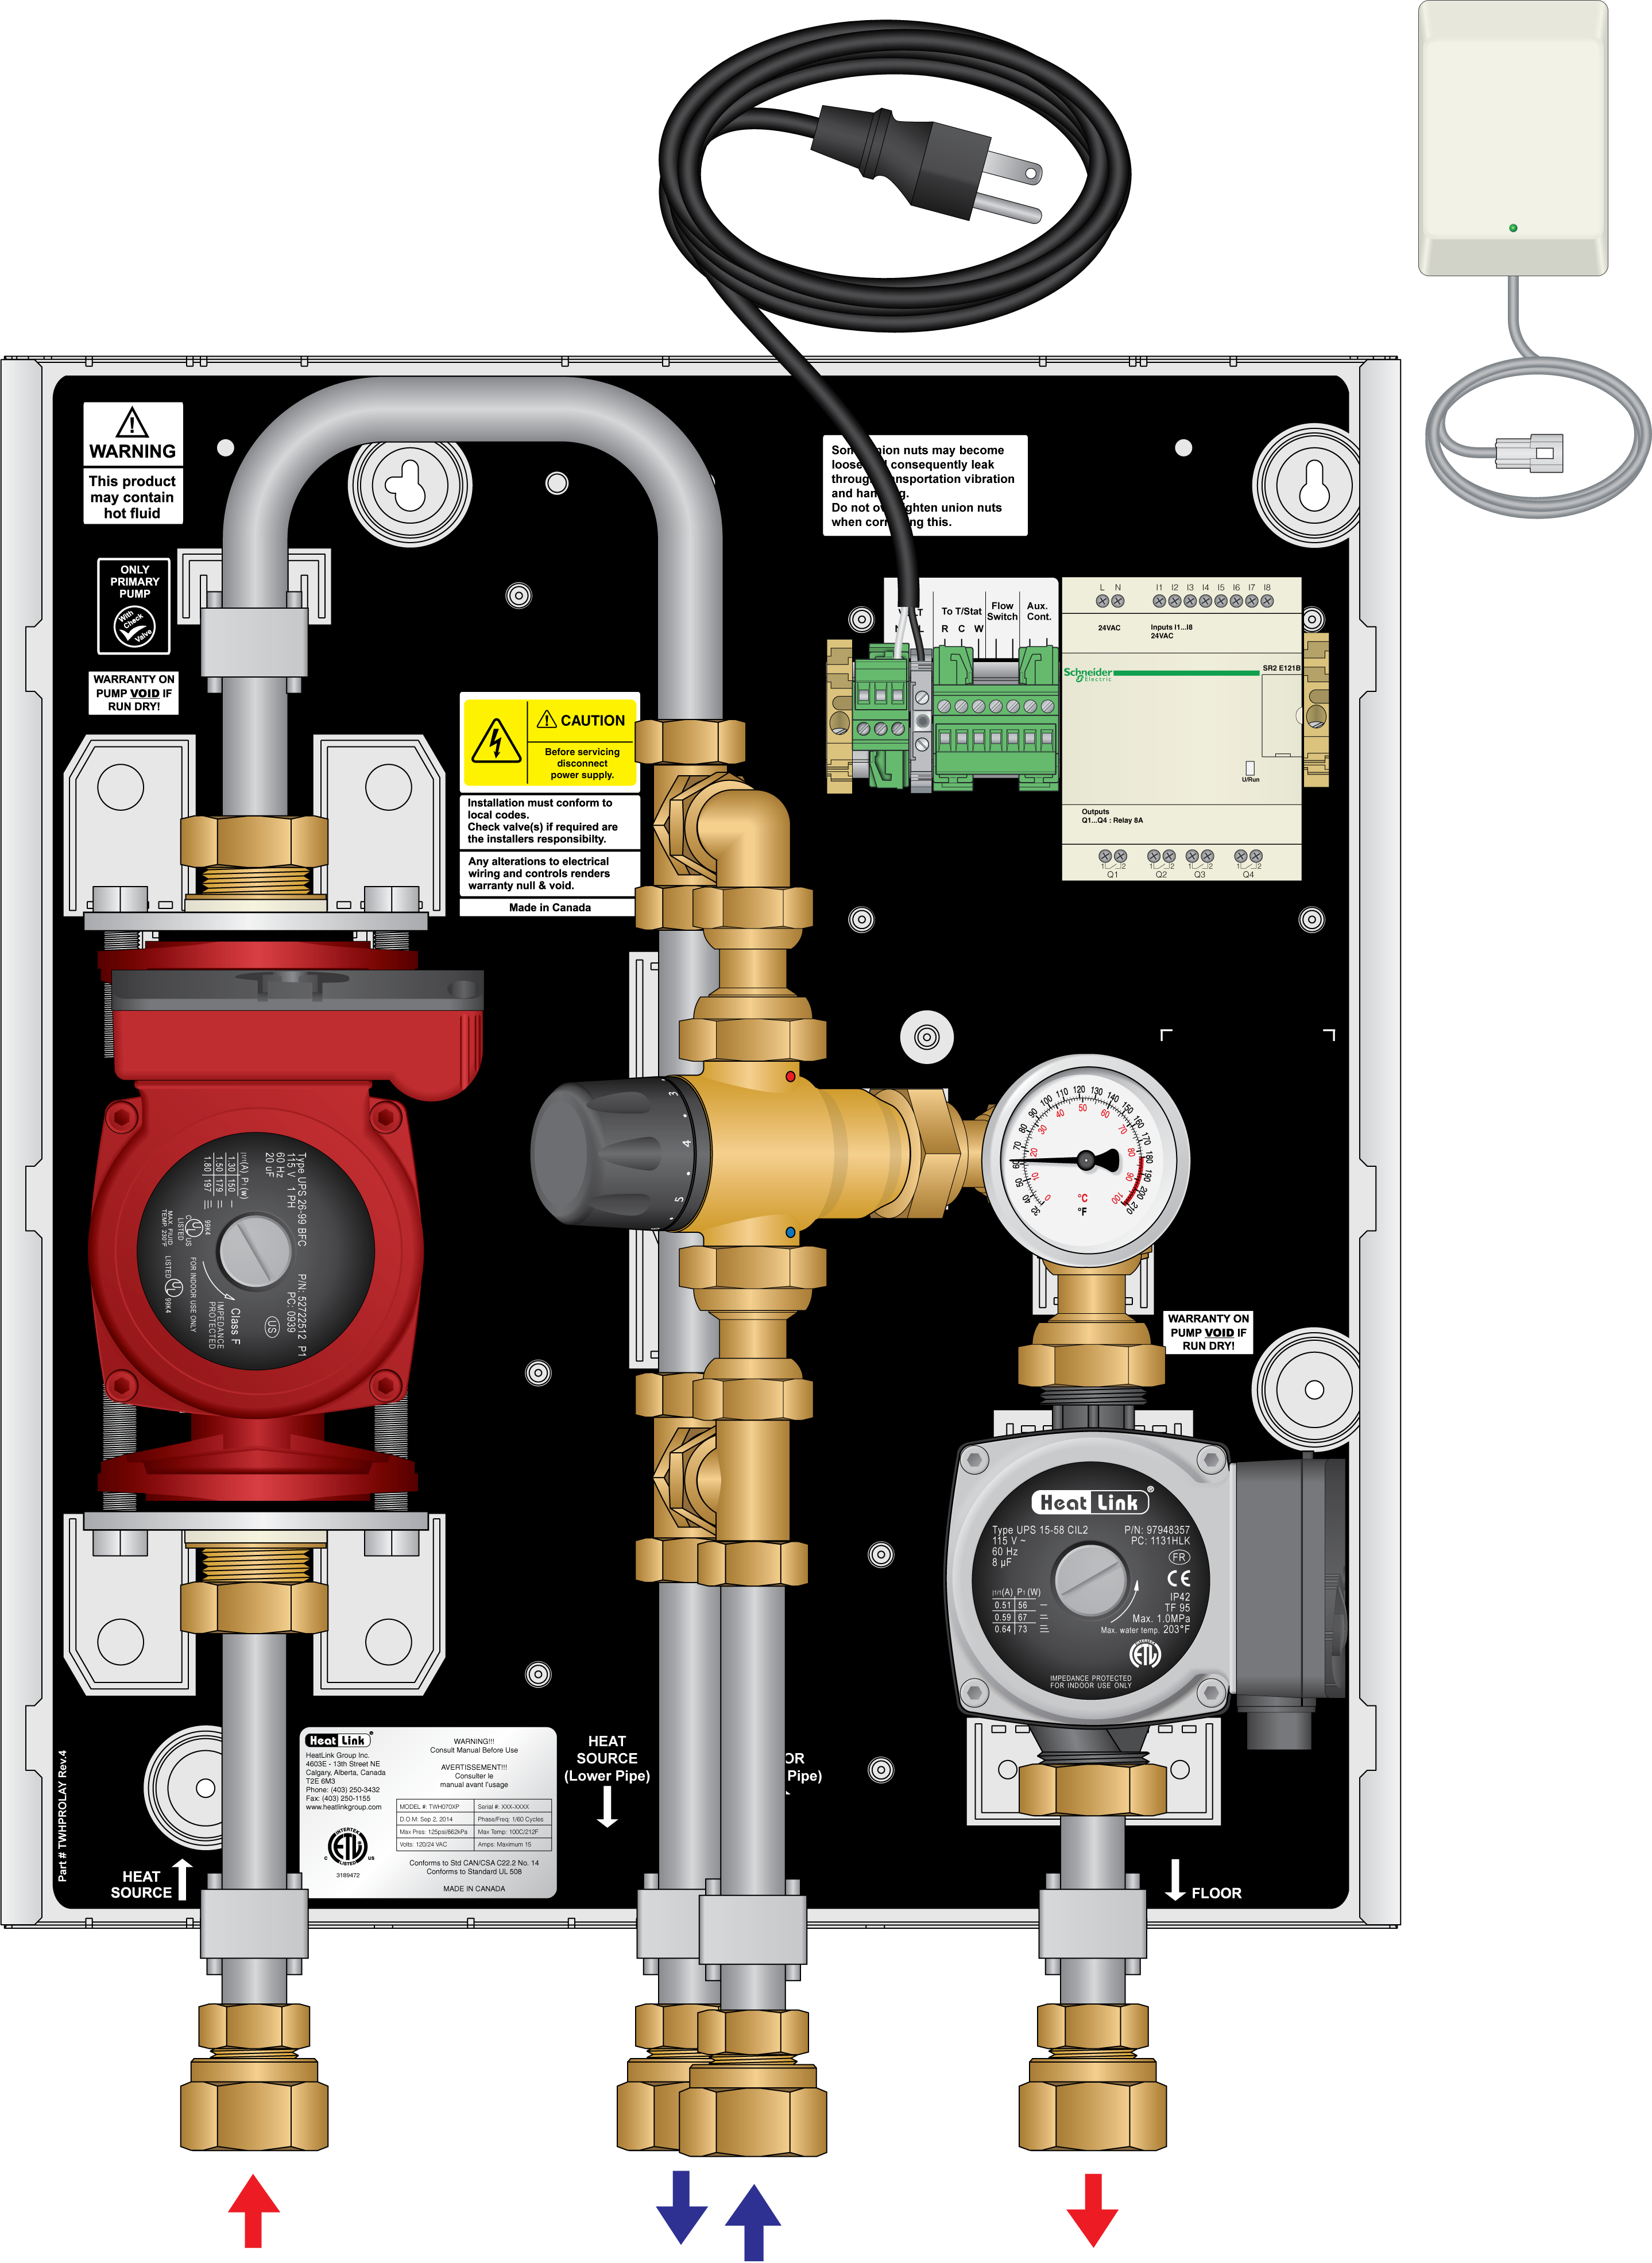 itl canada with Twh 70mbh Hh Tankless Water Heater Mixing Panel Dhw Priority Opt on VF2 1188 ITALIEN ITALY ITALIA Jahrgang Komplett Viererblock Quartina Xx 362184092373 further Zone Valve Actuator in addition 4 Way Mixing Valve X 1 14 besides Digital Heatcool Timer Thermostat also Encontro Internacional Debatera Eficiencia Energetica No Transporte.